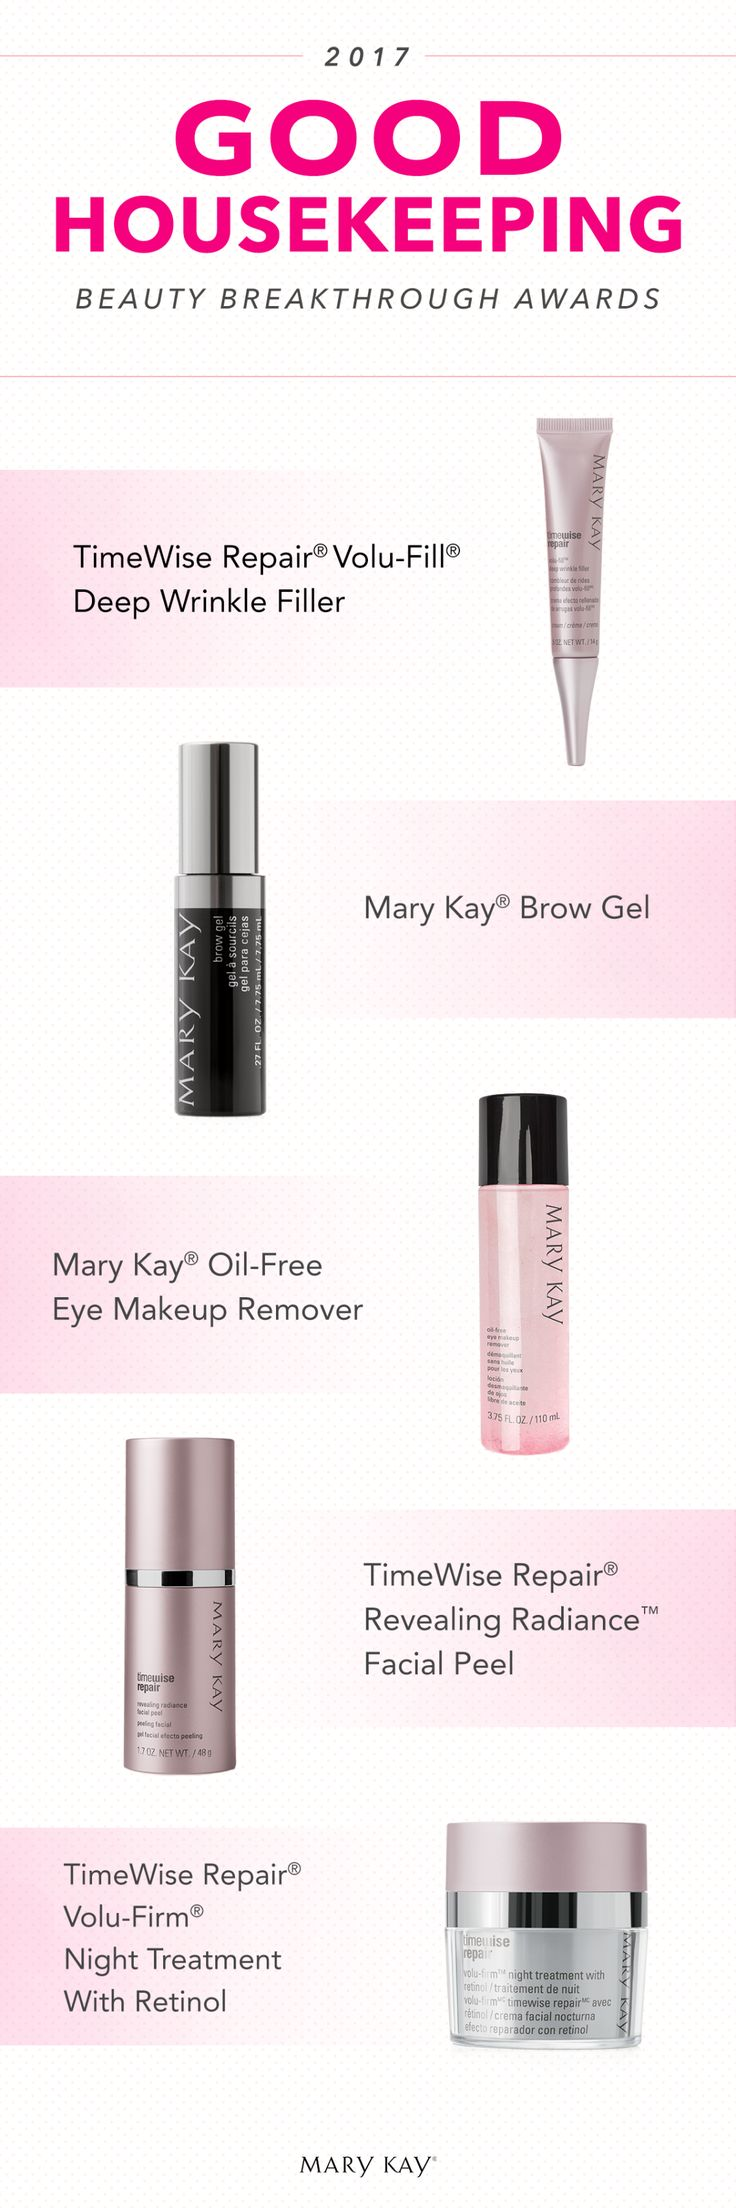 Mary kay online agreement on intouch - Beauty Secrets